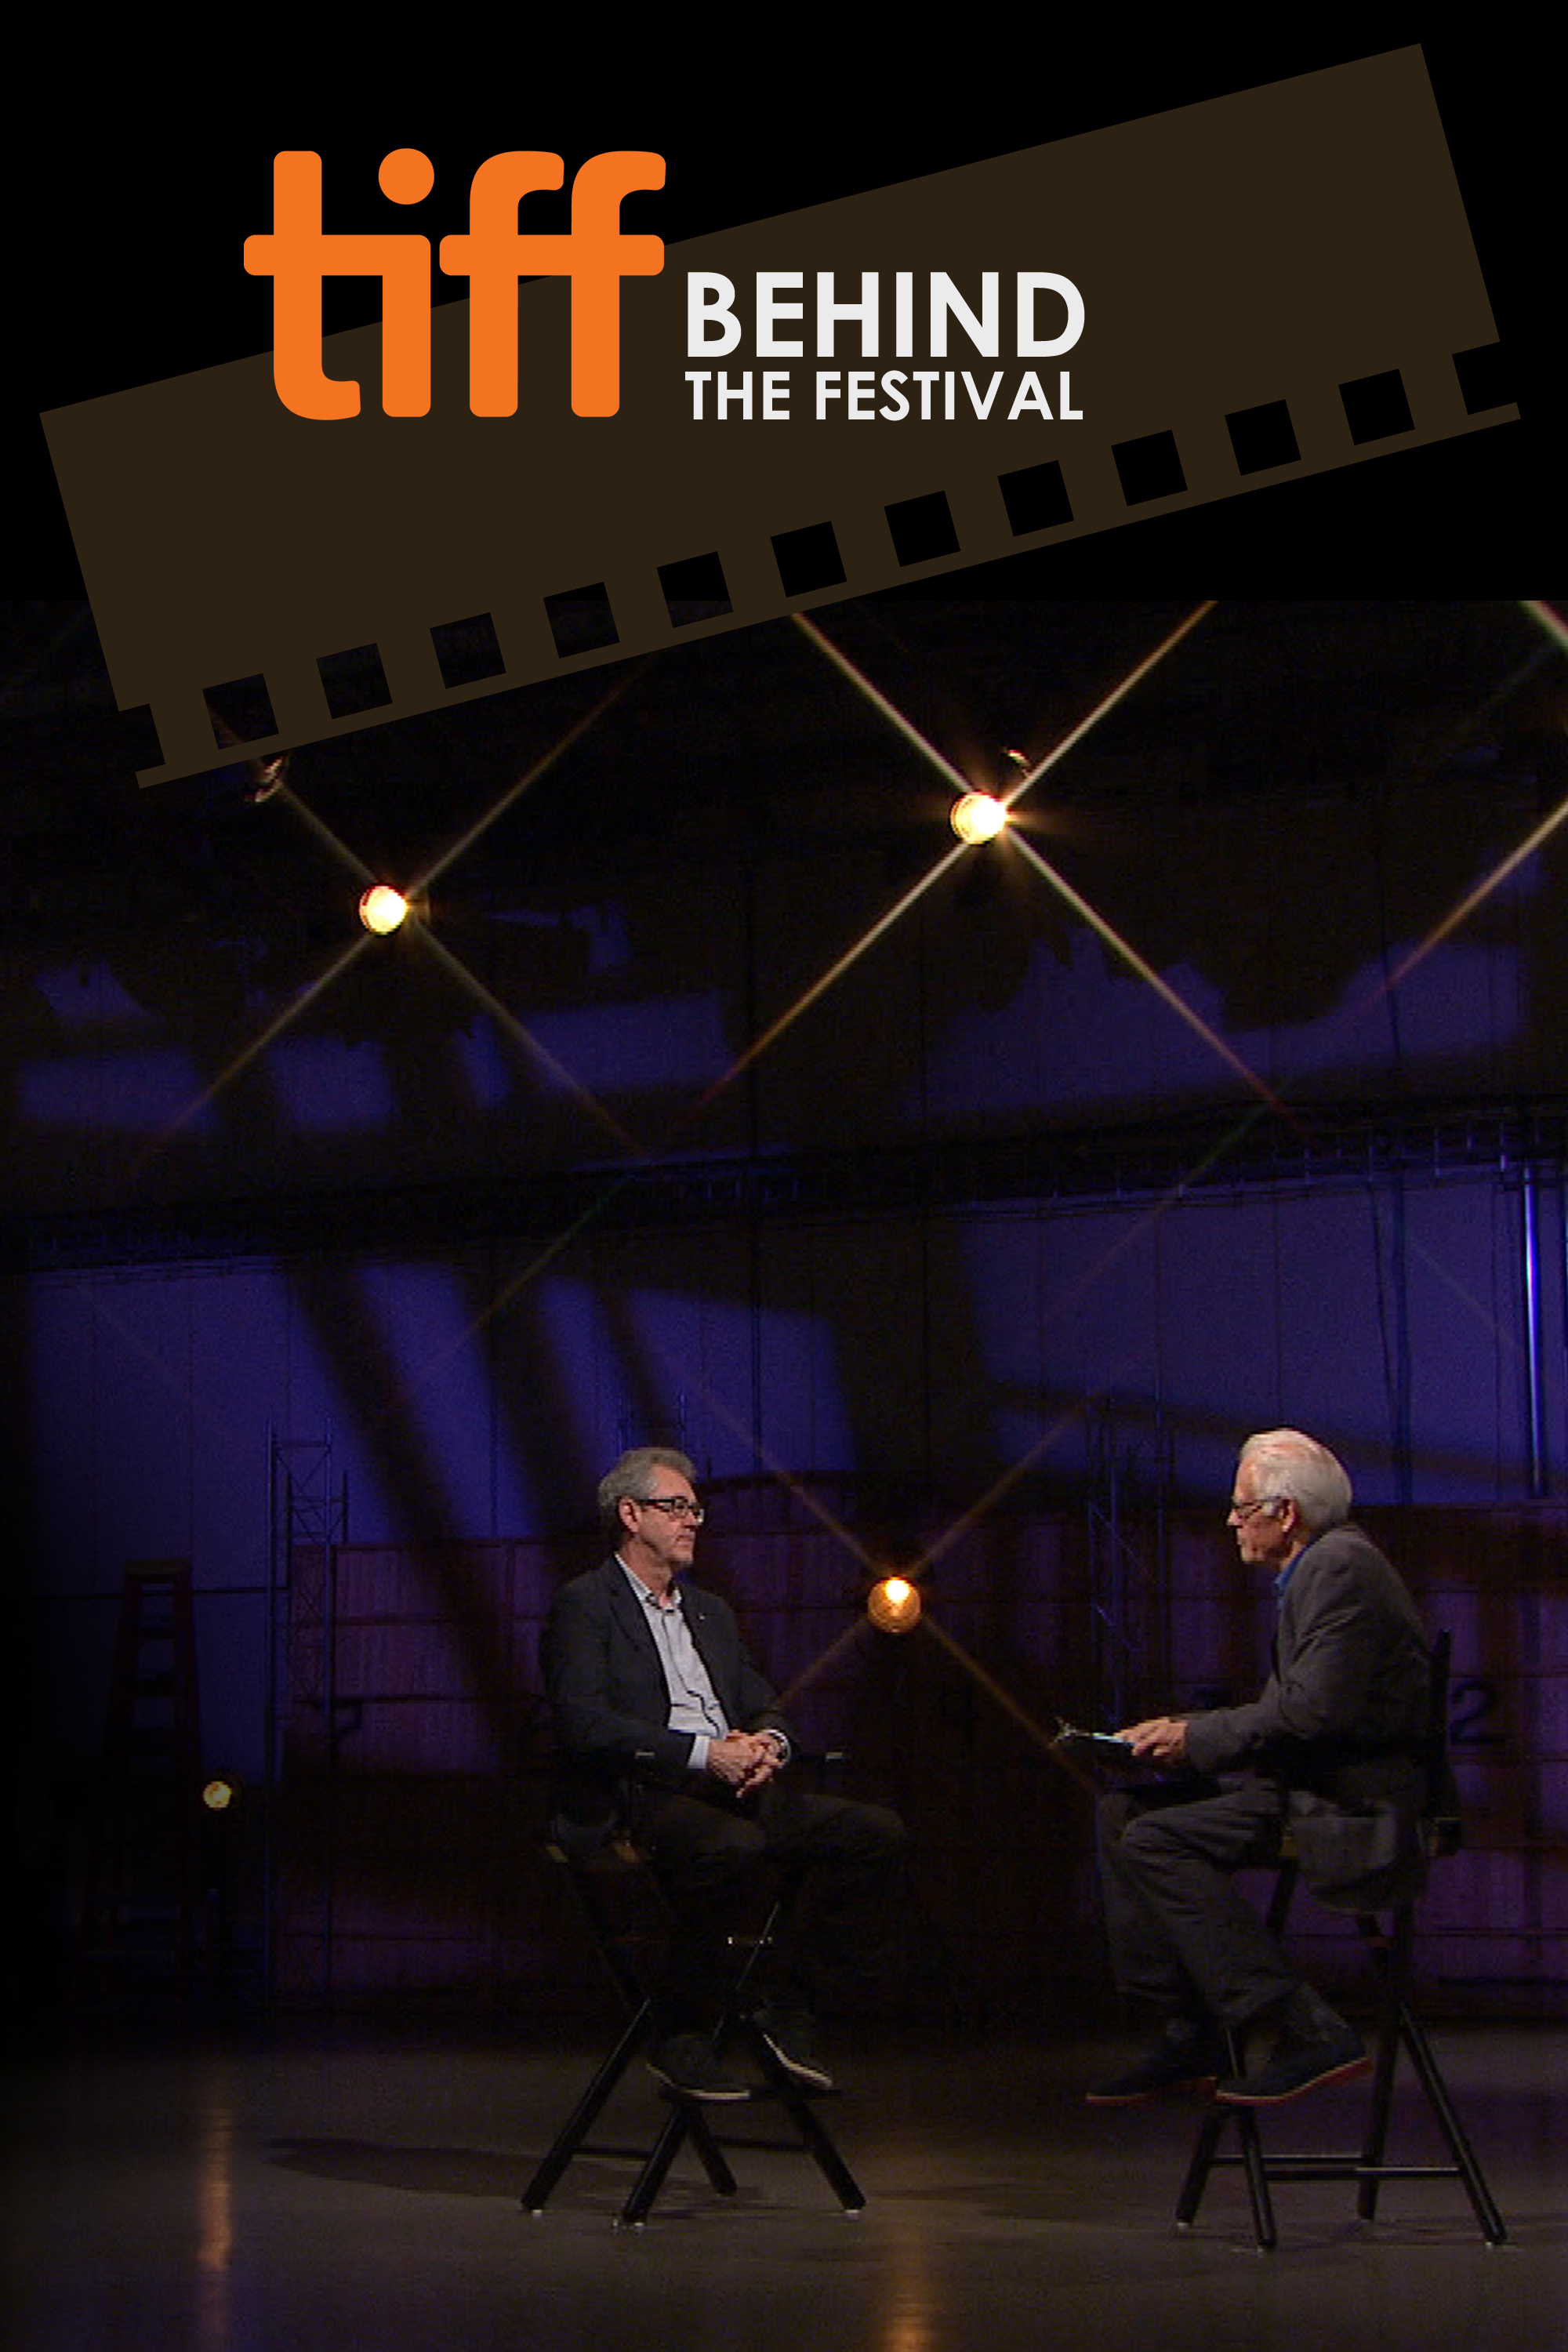 TIFF Behind the Festival | Premieres Nov. 26